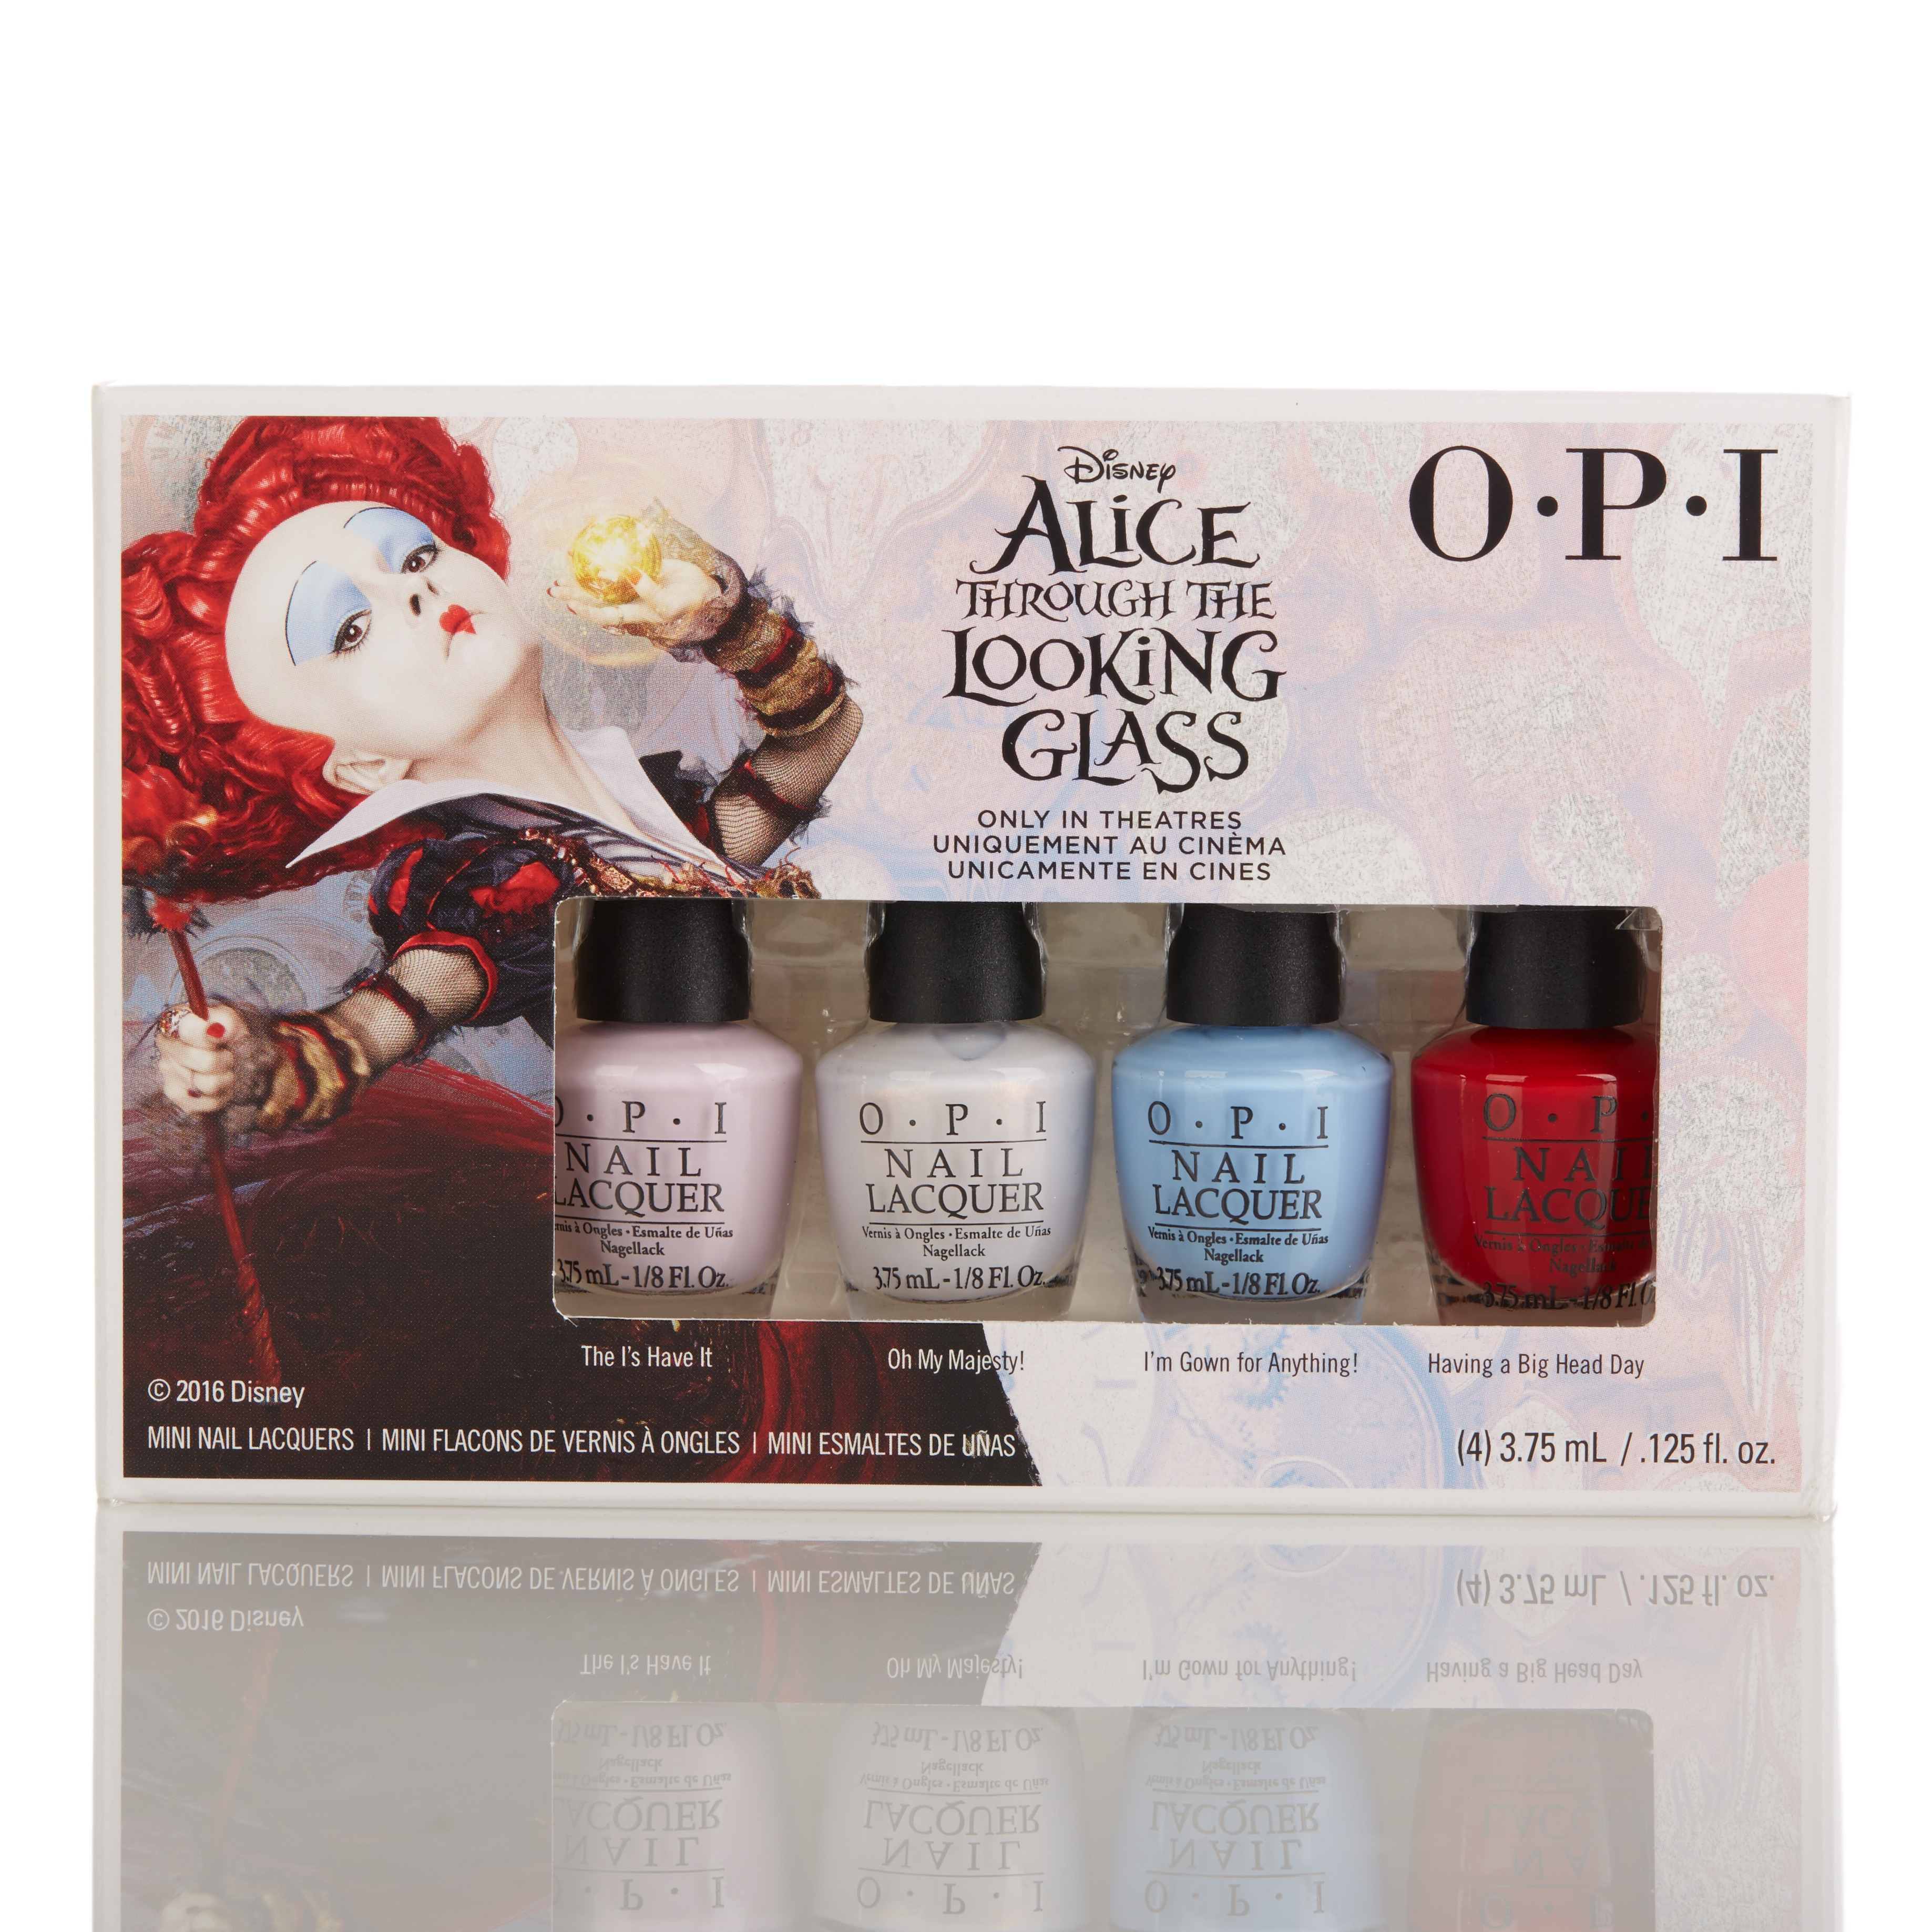 An example of 'Alice'-themed merchandise sold by HSN this week.